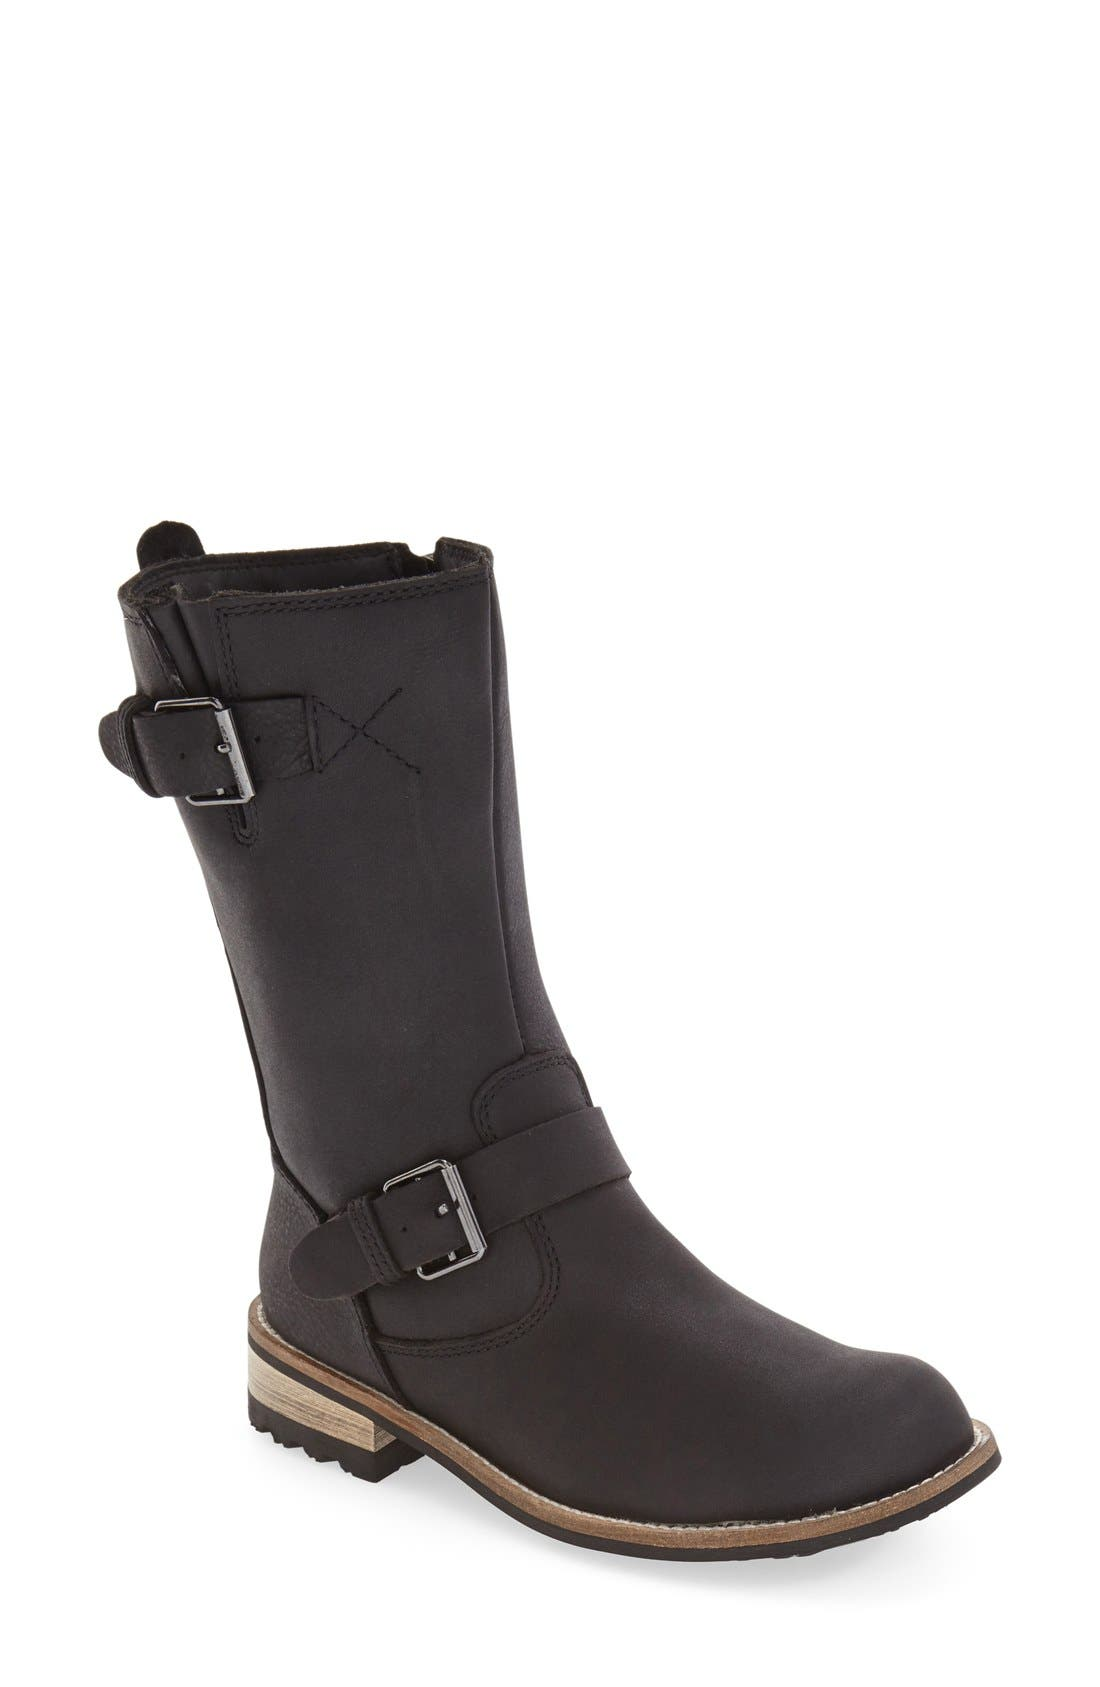 Alternate Image 1 Selected - Kodiak 'Alcona' Waterproof Boot (Women)